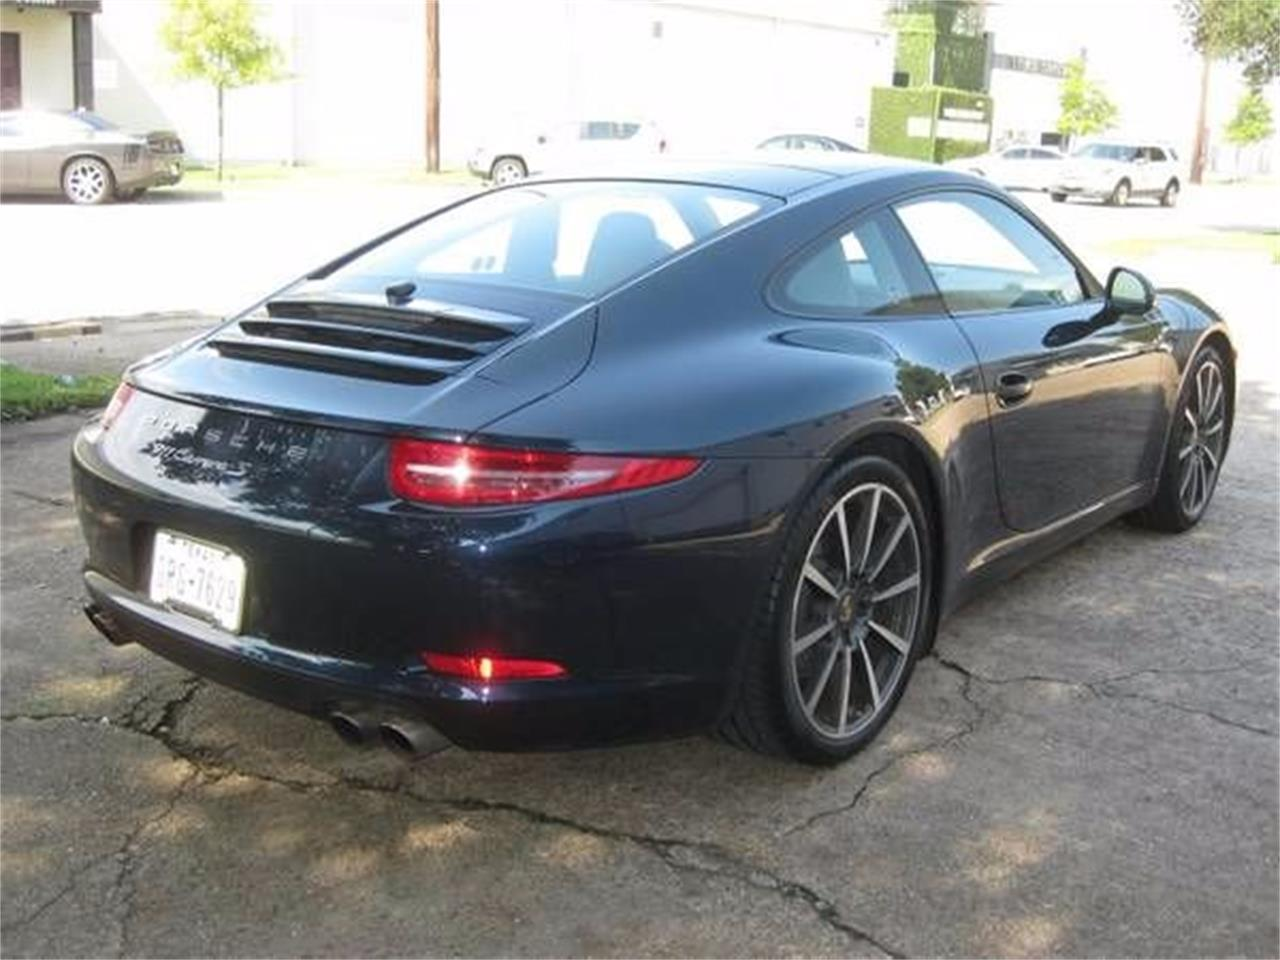 Large Picture of 2012 911 - $73,995.00 Offered by Classic Car Deals - O0YO